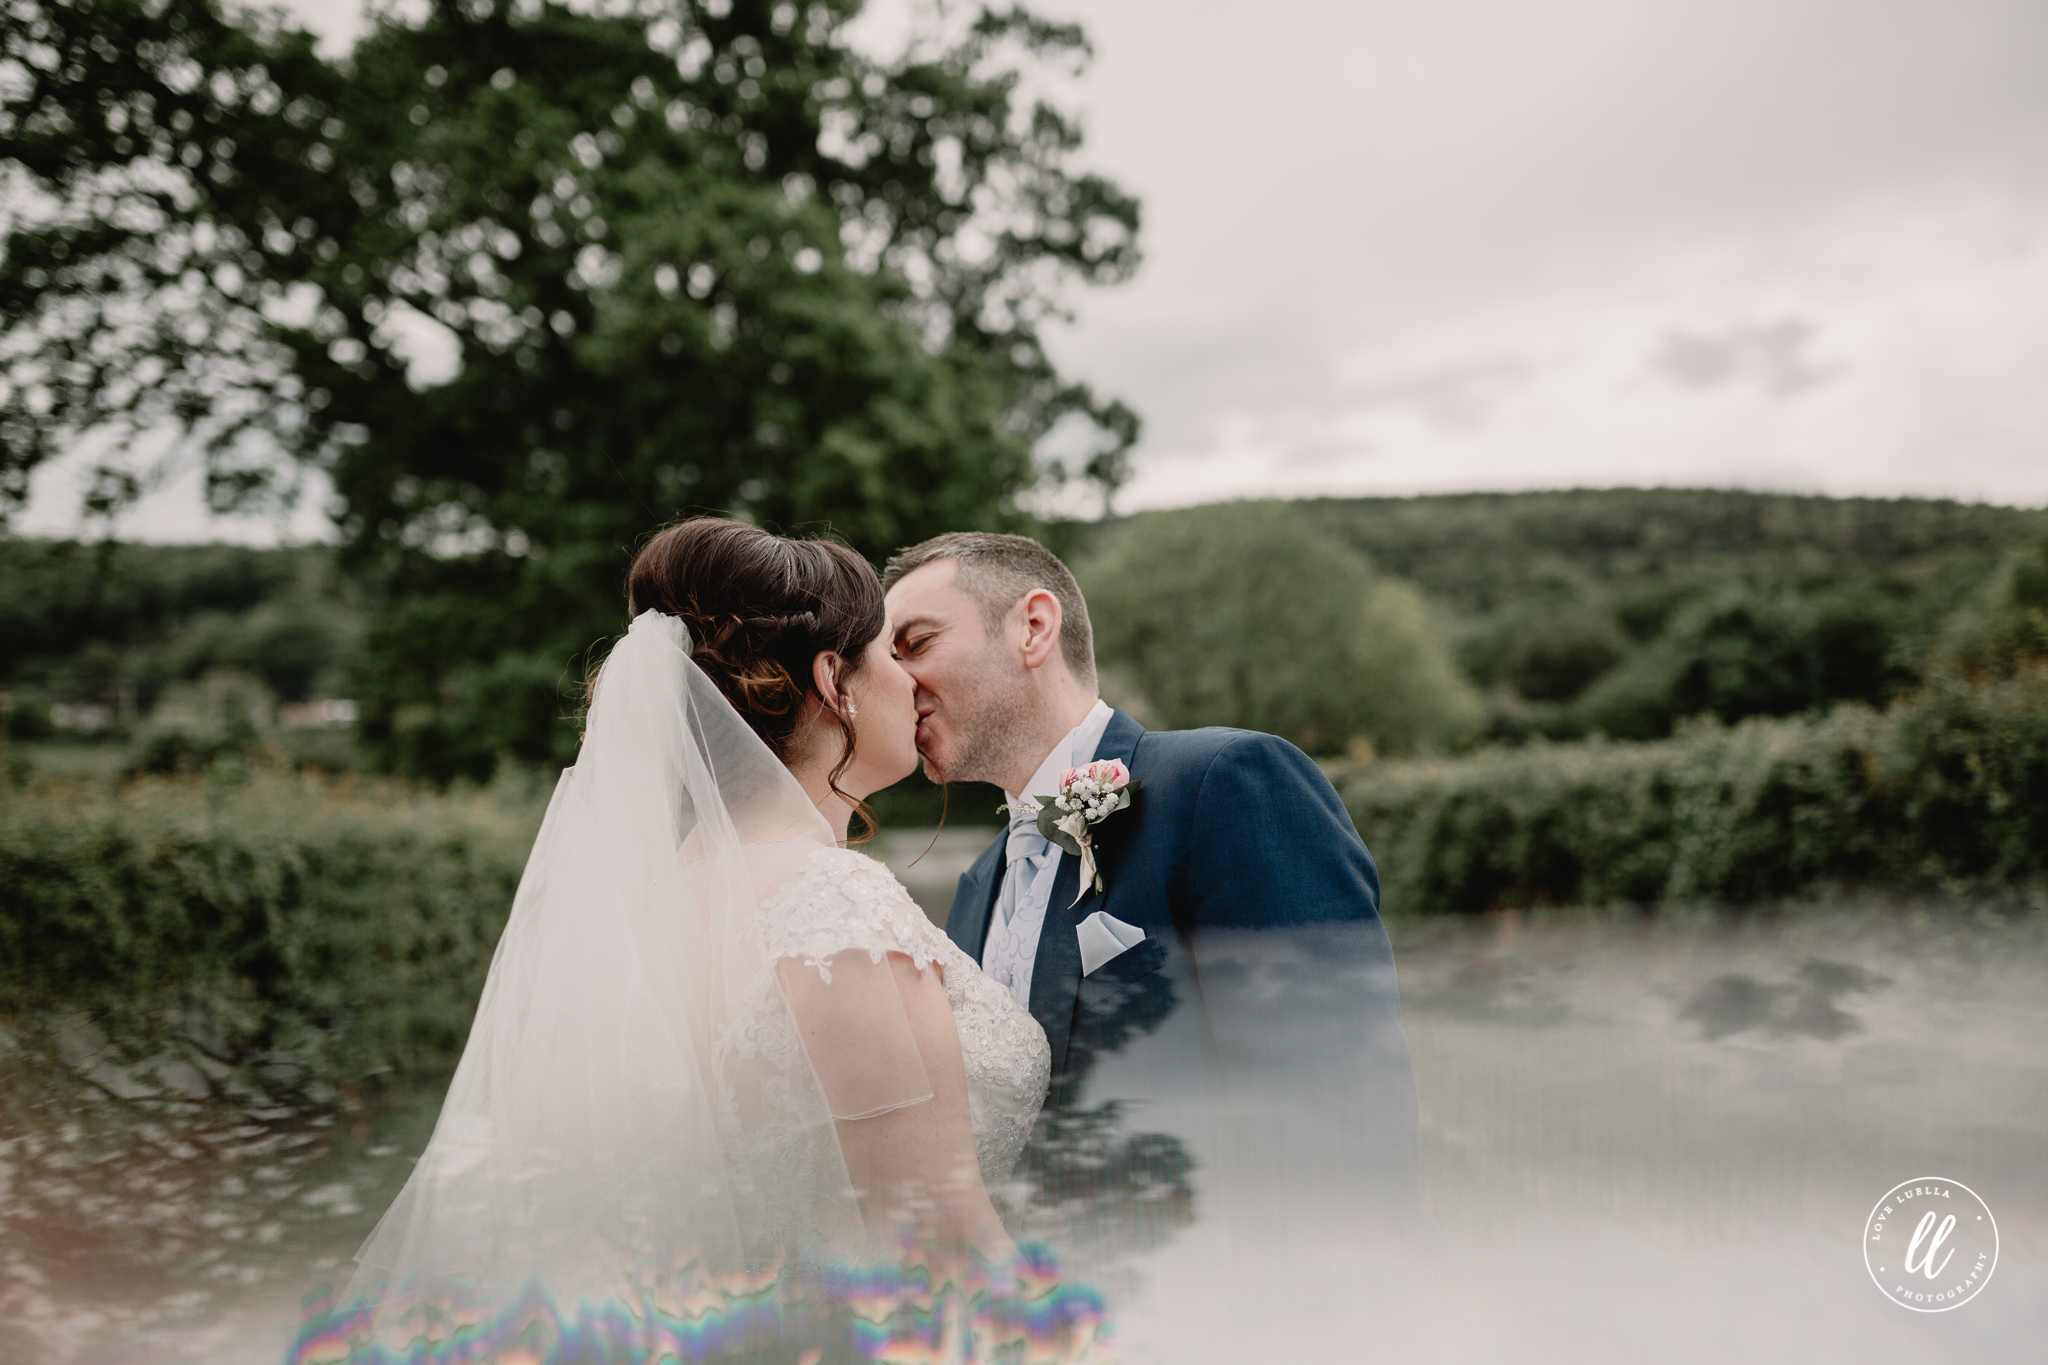 mr and mrs jones sharing a kiss outside the Kinmel Manor, image shot with a prism for a light effect